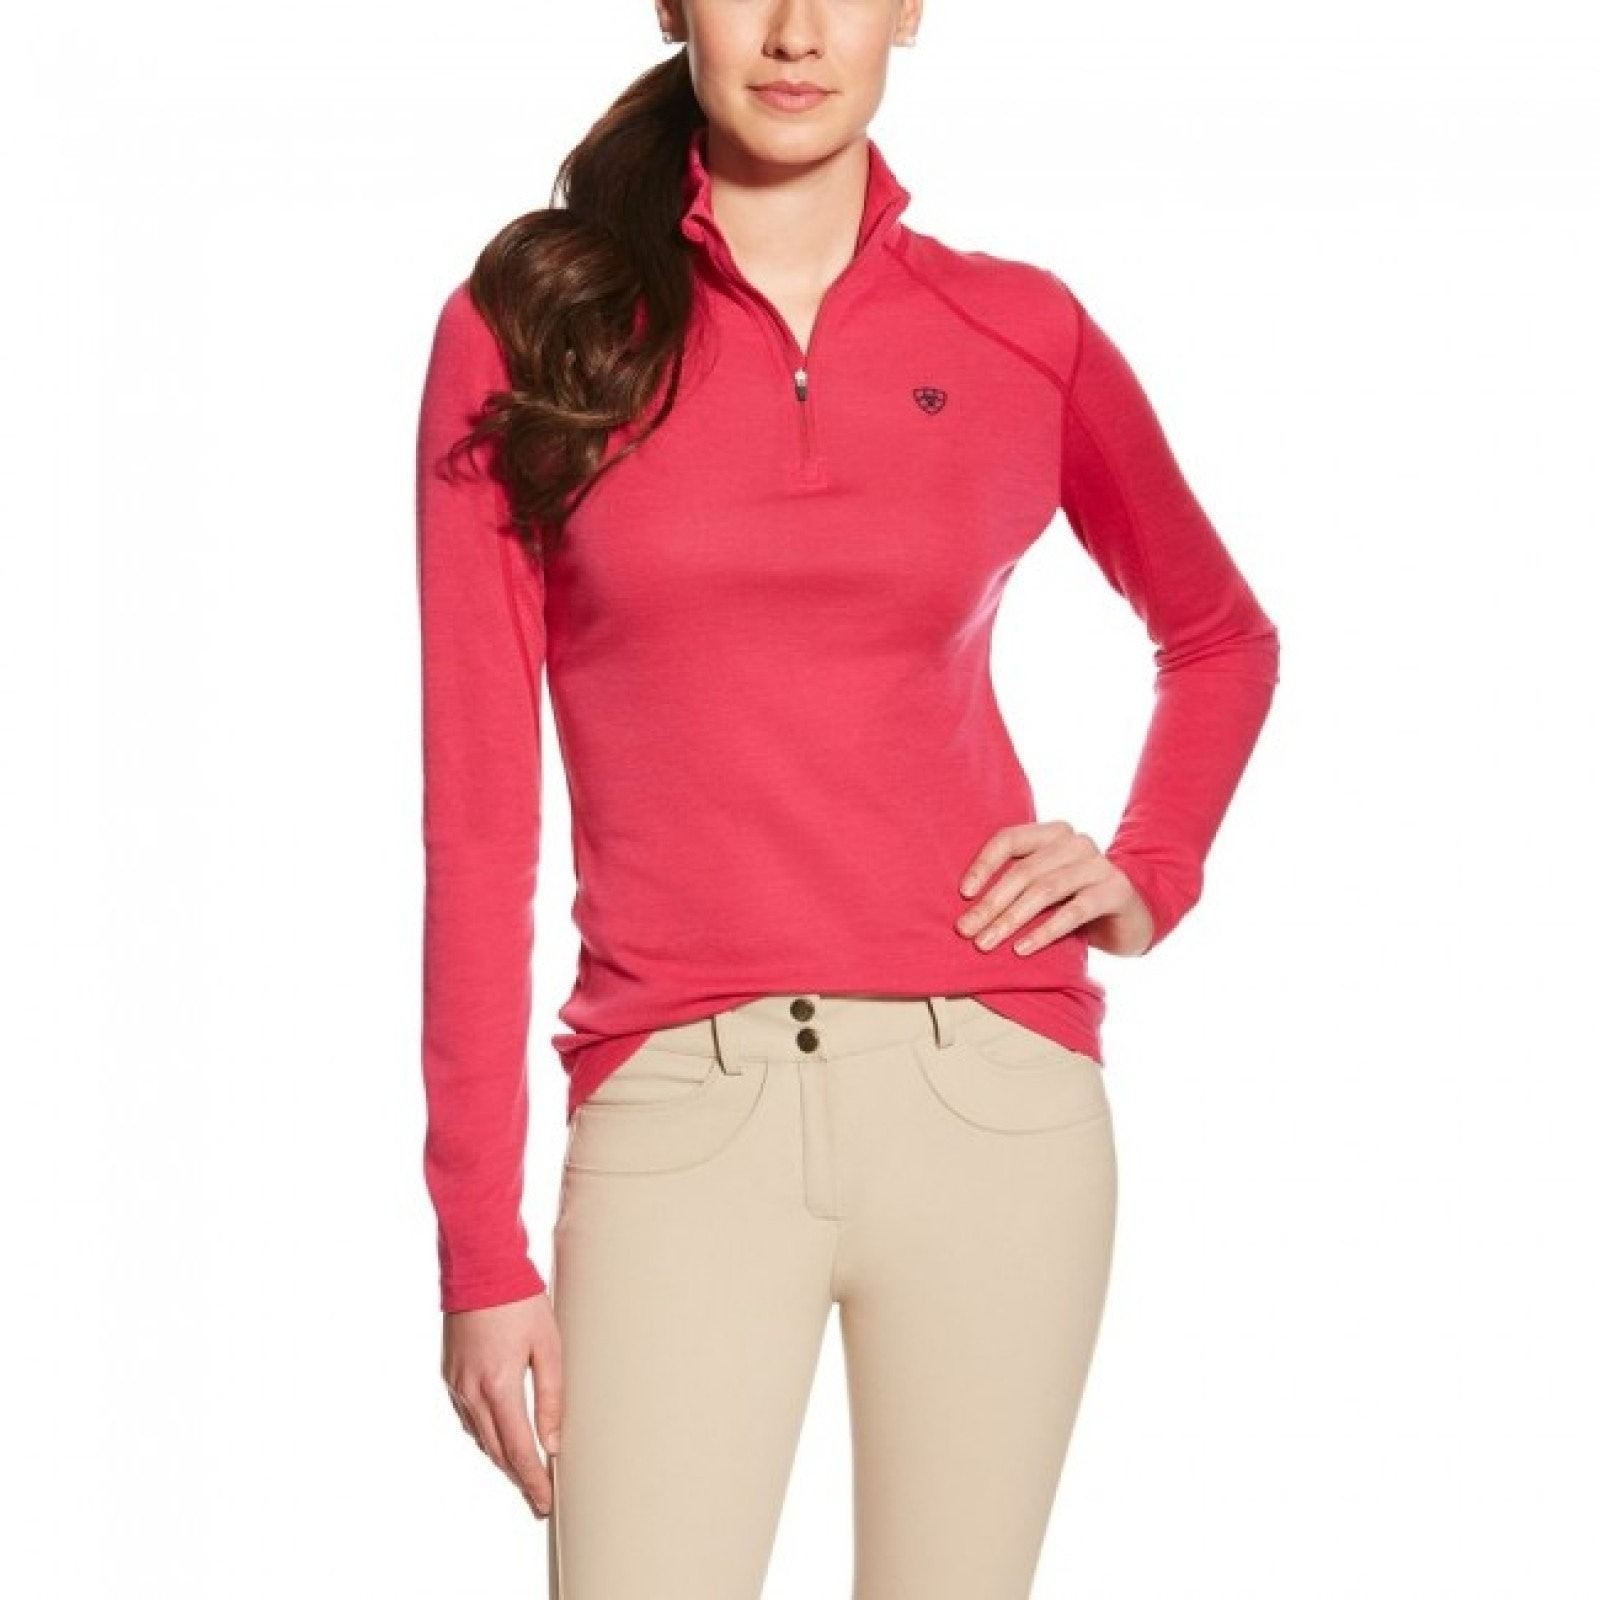 Ariat Candence 3/4 Zip Baselayer Top